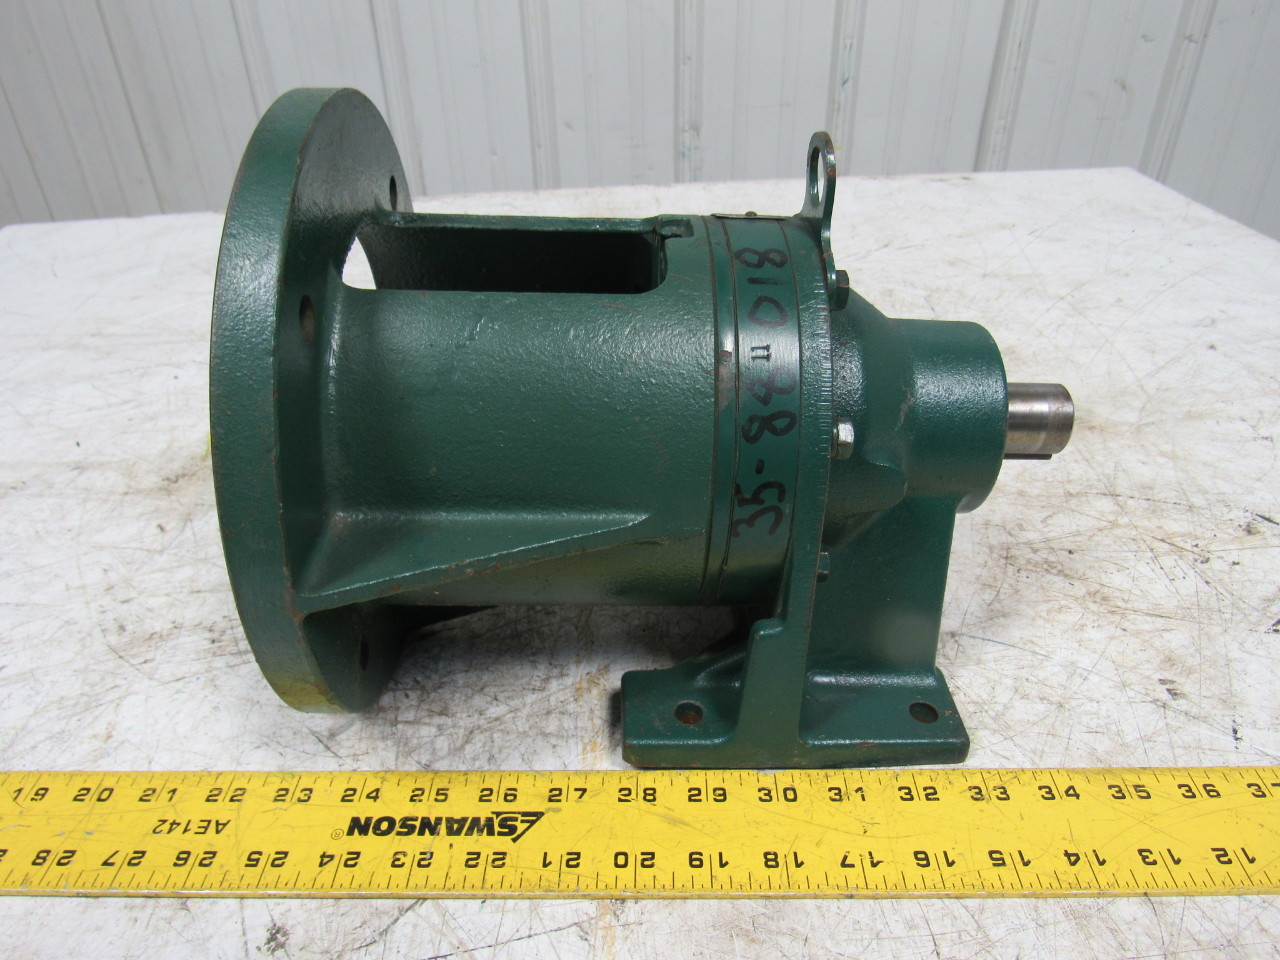 Sumitomo SM-Cyclo HC3095 Inline Gear Reducer 11:1 Ratio 1.45 Hp